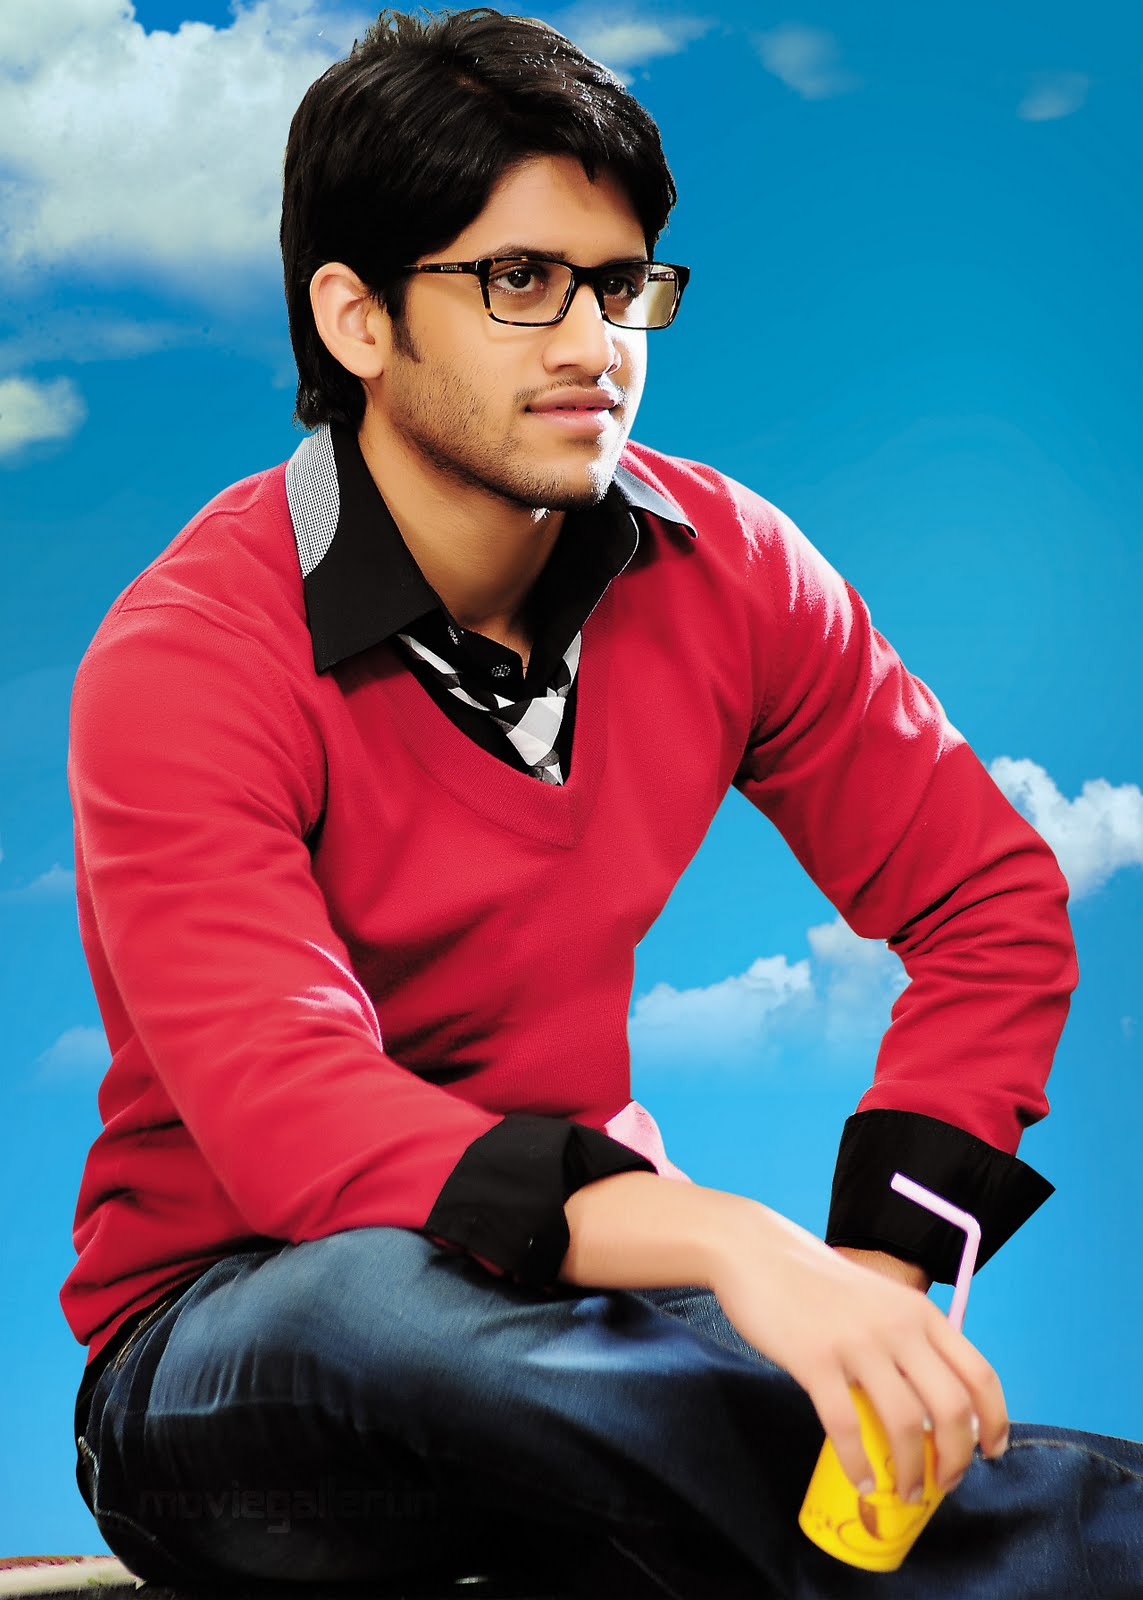 http://3.bp.blogspot.com/_6Vr9b9OoZno/TOyyHnMKAVI/AAAAAAAAE_k/MNcHcaiqrSs/s1600/naga_chaitanya_latest_new_movie_wallpapers_02.jpg